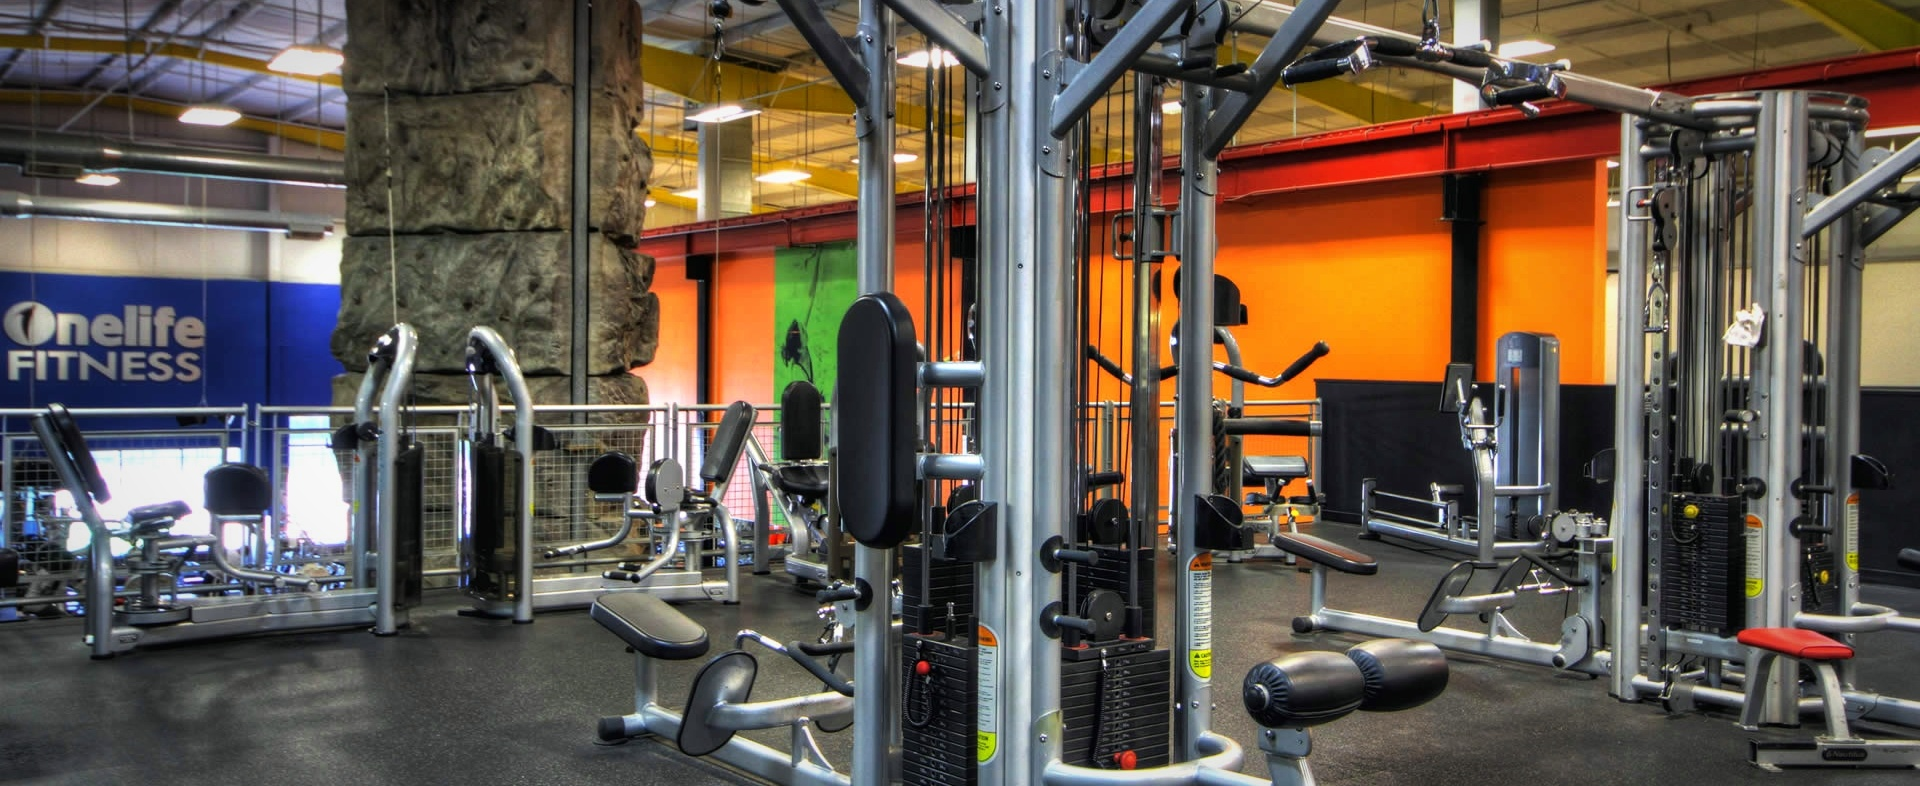 Newport News Gym and Health Club Onelife Fitness